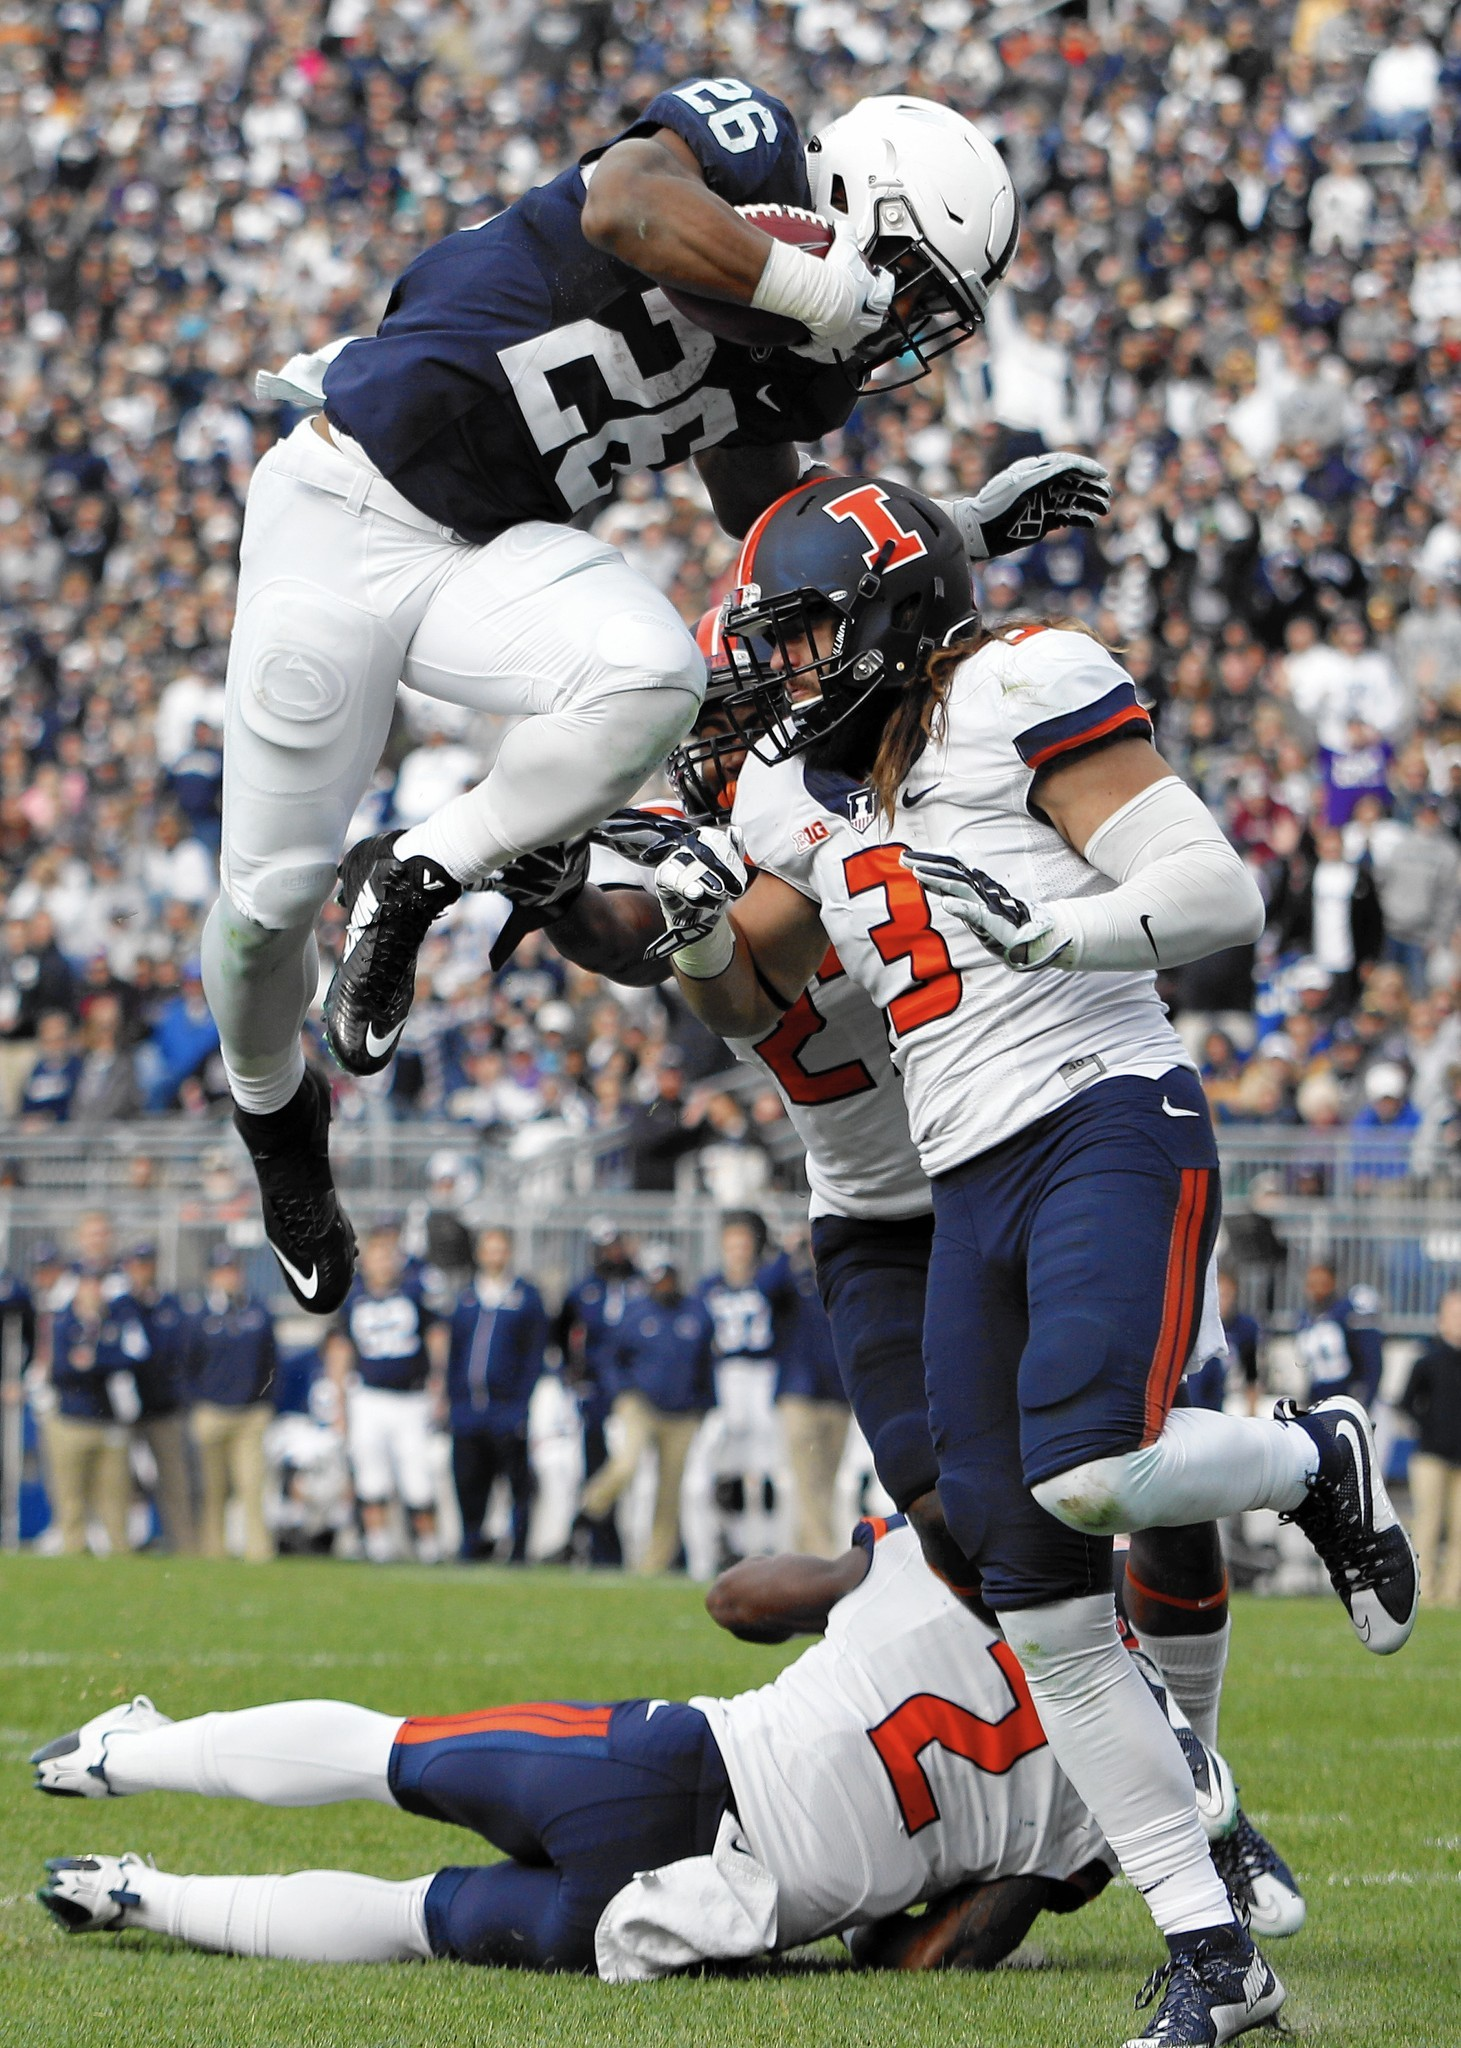 Penn State running back Saquon Barkley leaps to another ...